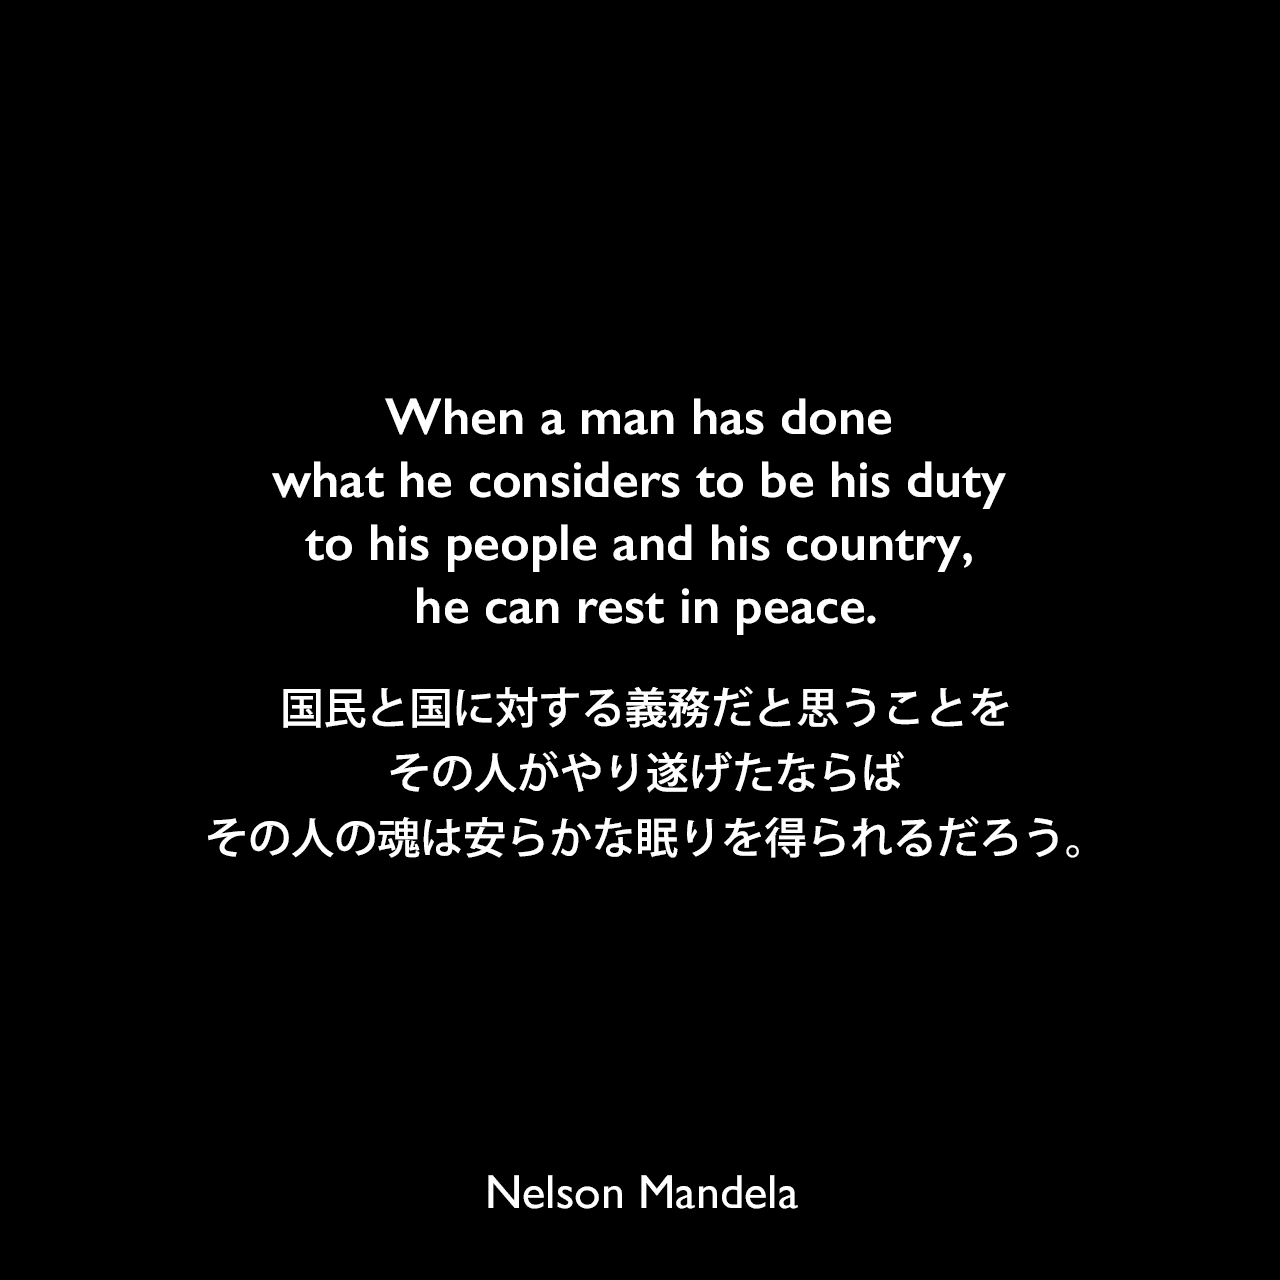 When a man has done what he considers to be his duty to his people and his country, he can rest in peace.国民と国に対する義務だと思うことをその人がやり遂げたならば、その人の魂は安らかな眠りを得られるだろう。- ネルソン・マンデラへの1994年のインタビュー番組よりNelson Mandela